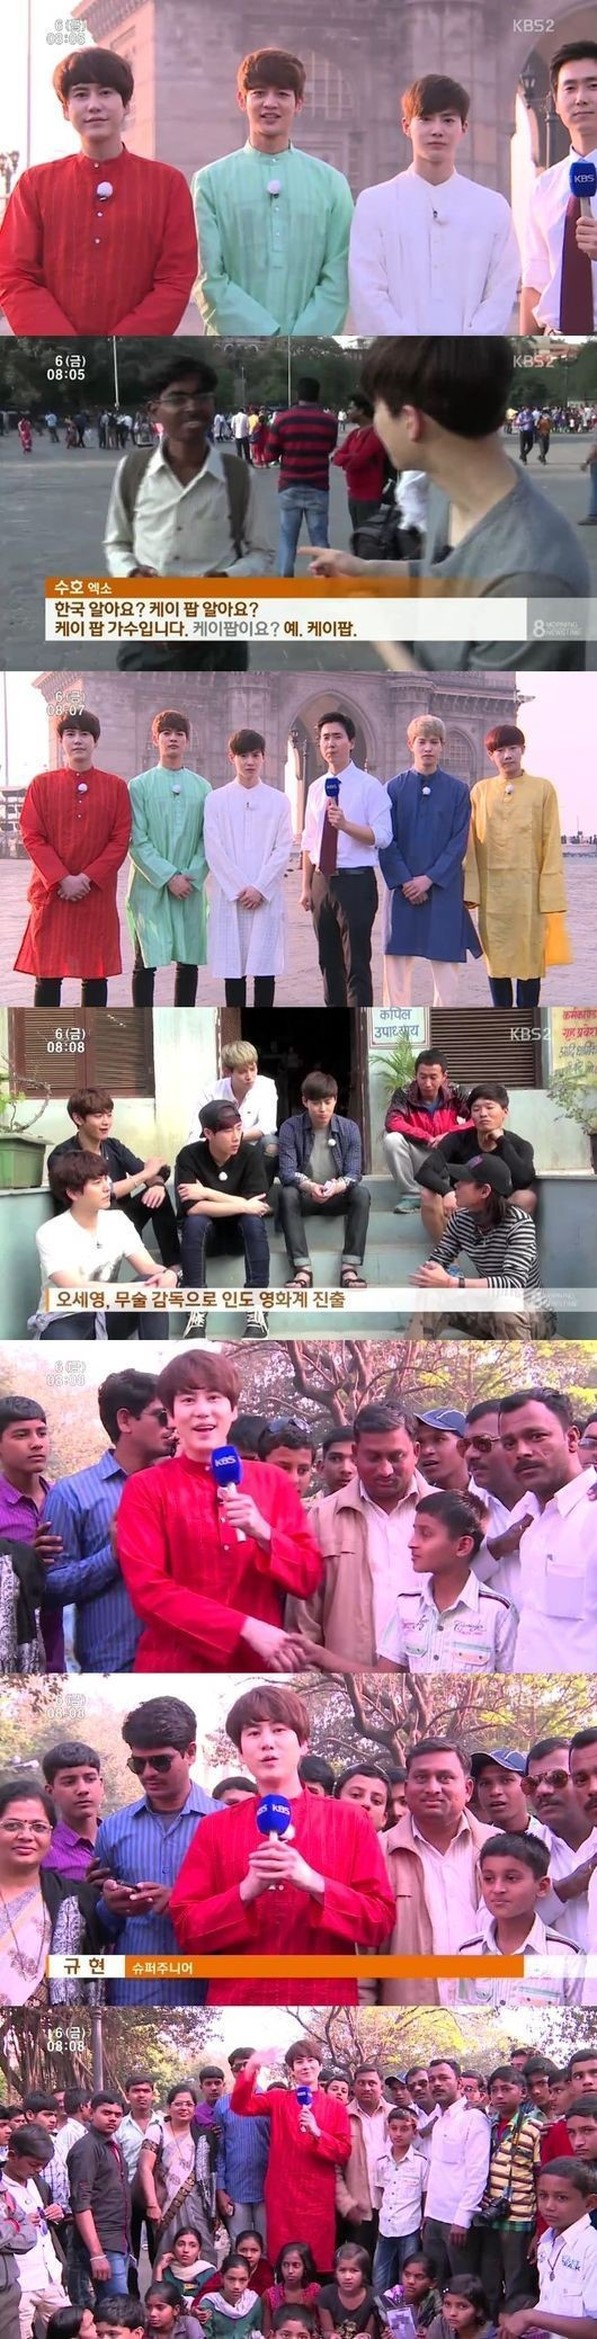 Kyu line sends greetings from india as news reporters soompi kyuline india 2 kristyandbryce Choice Image